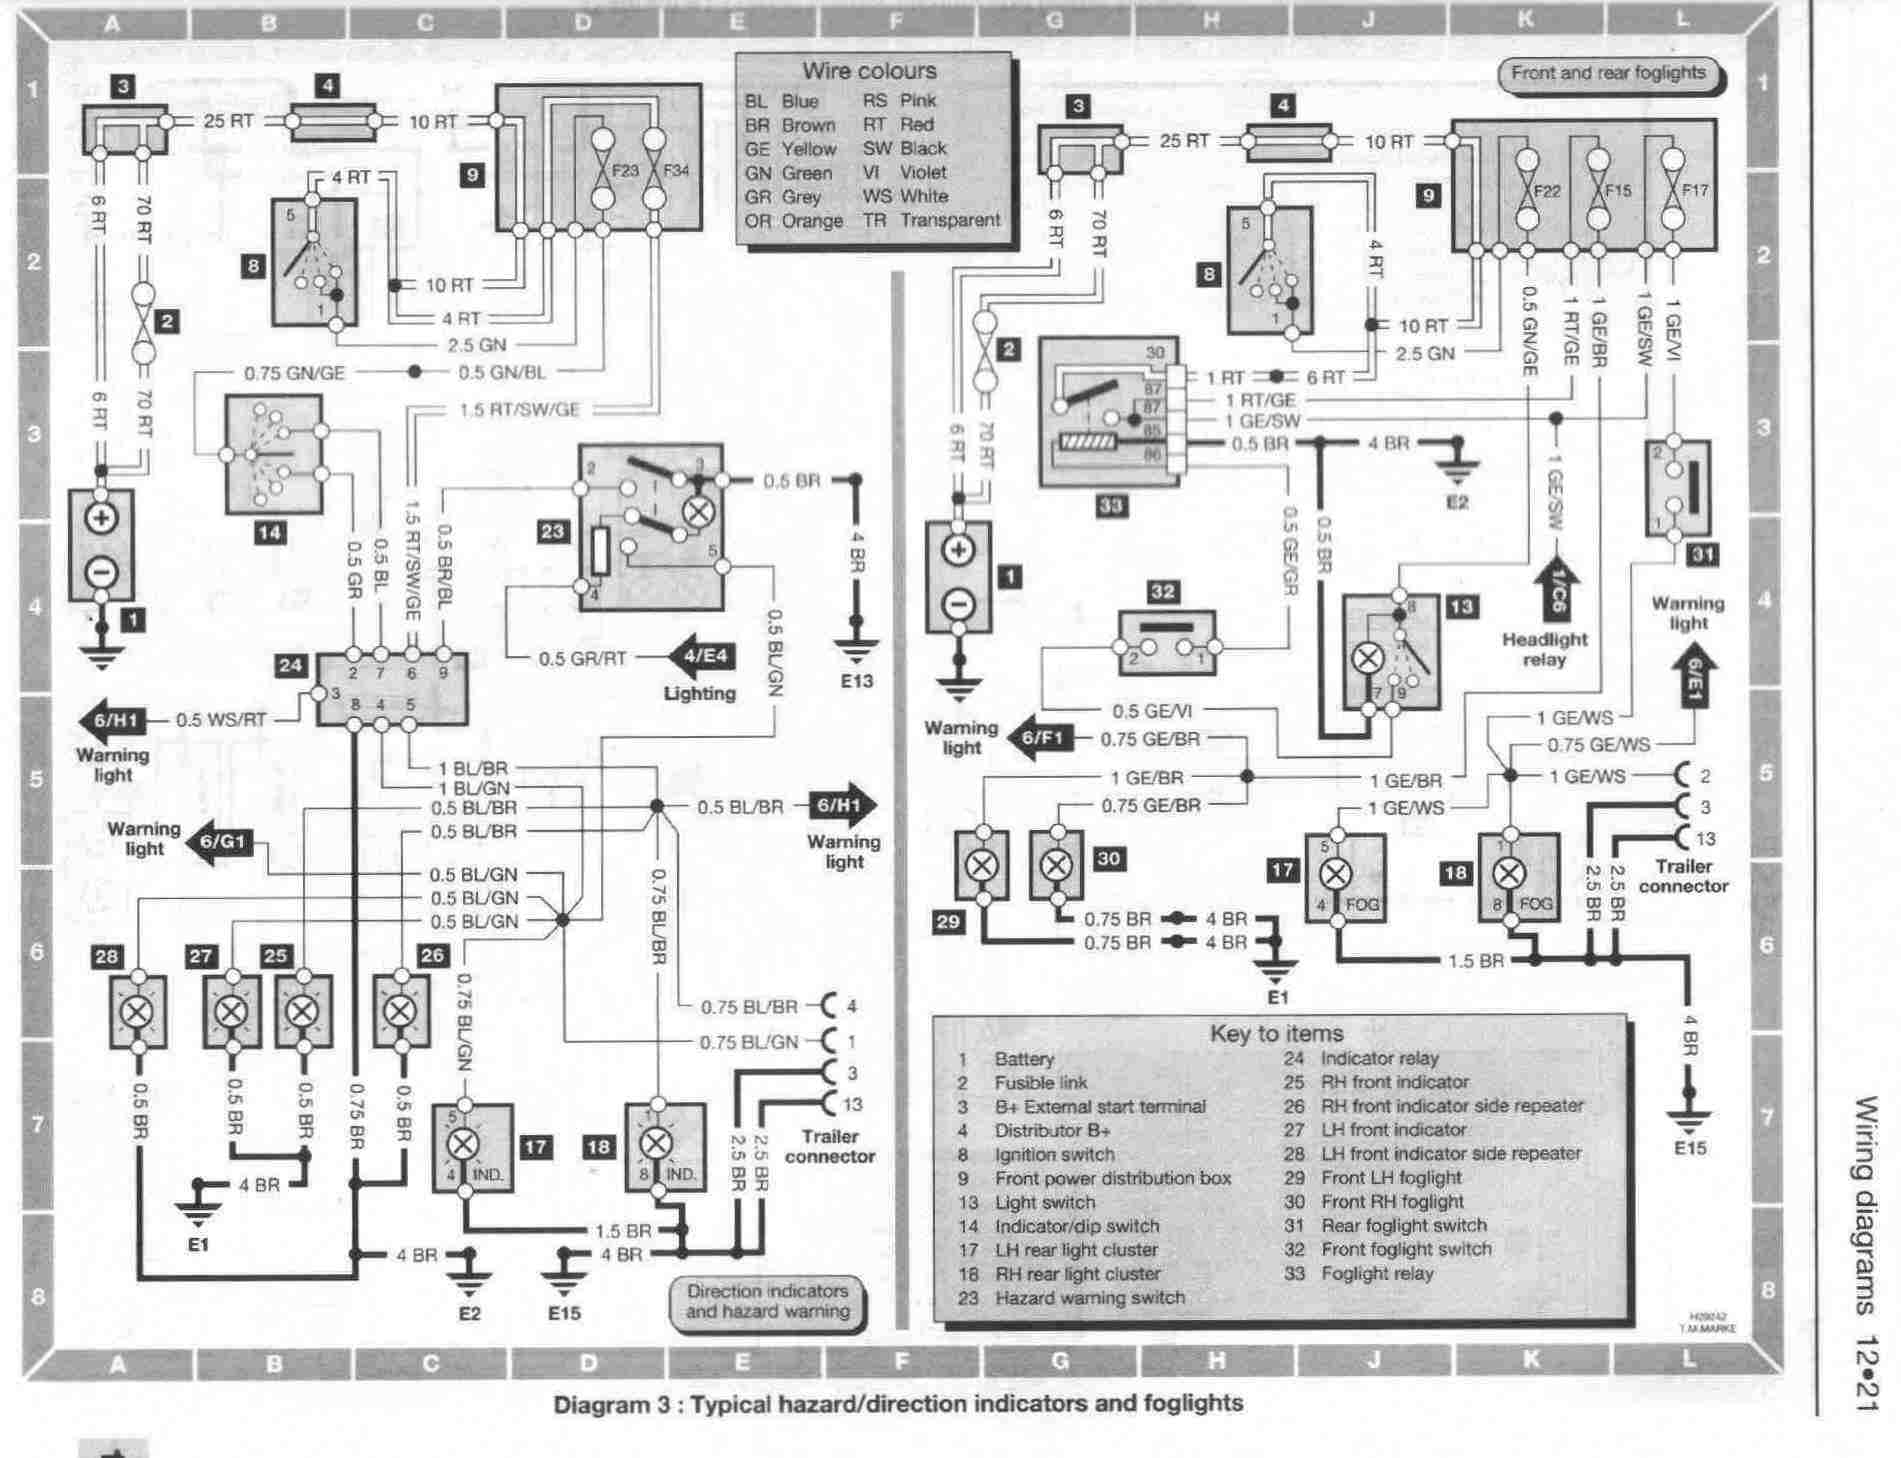 foglamp wiring wiring diagram for international 656 the wiring diagram ih wiring diagrams at arjmand.co